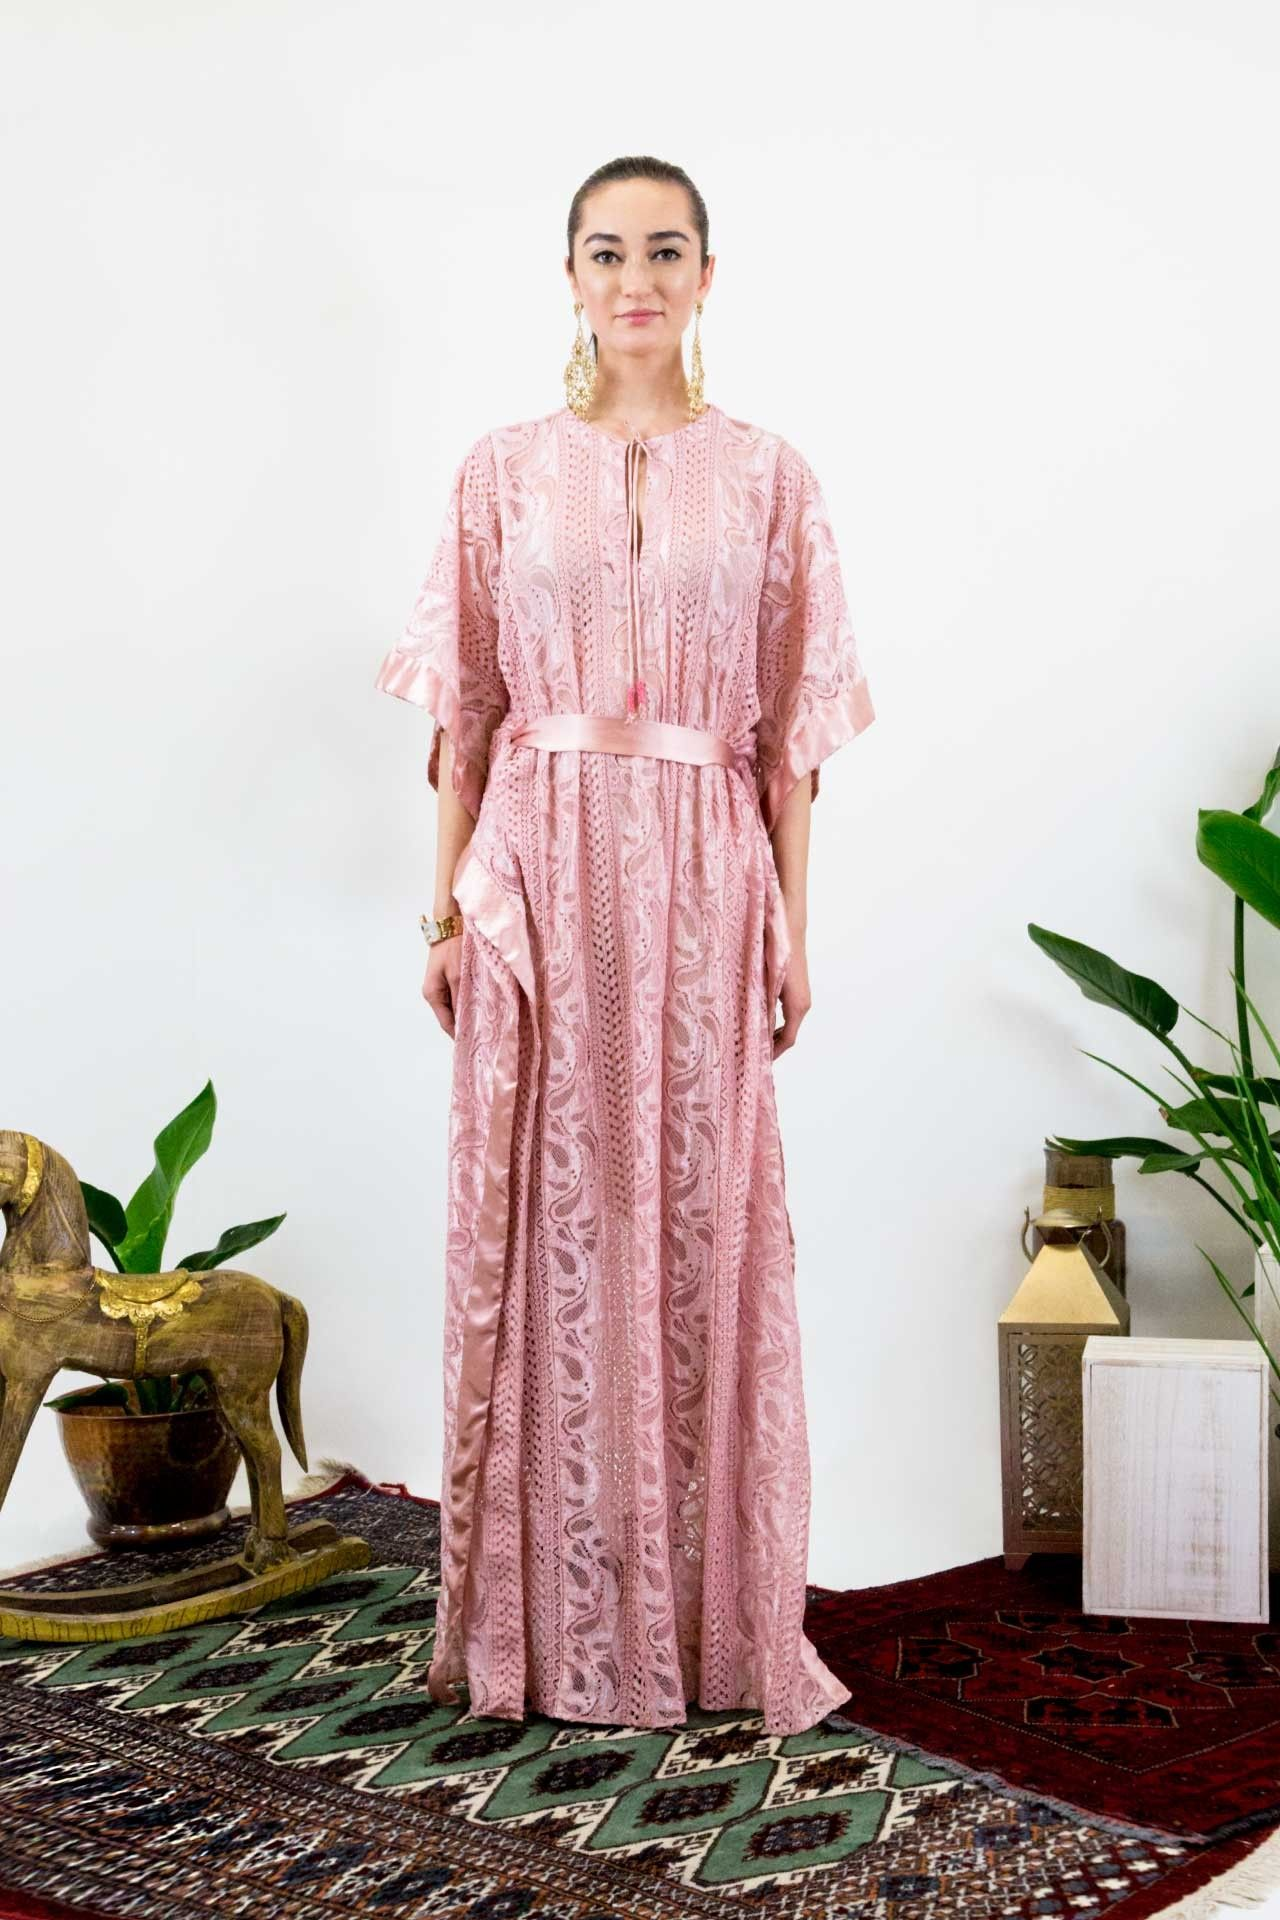 dc62eceb2 Light pink long lace kaftan dress designer women clothing shahida parides  also rh pinterest